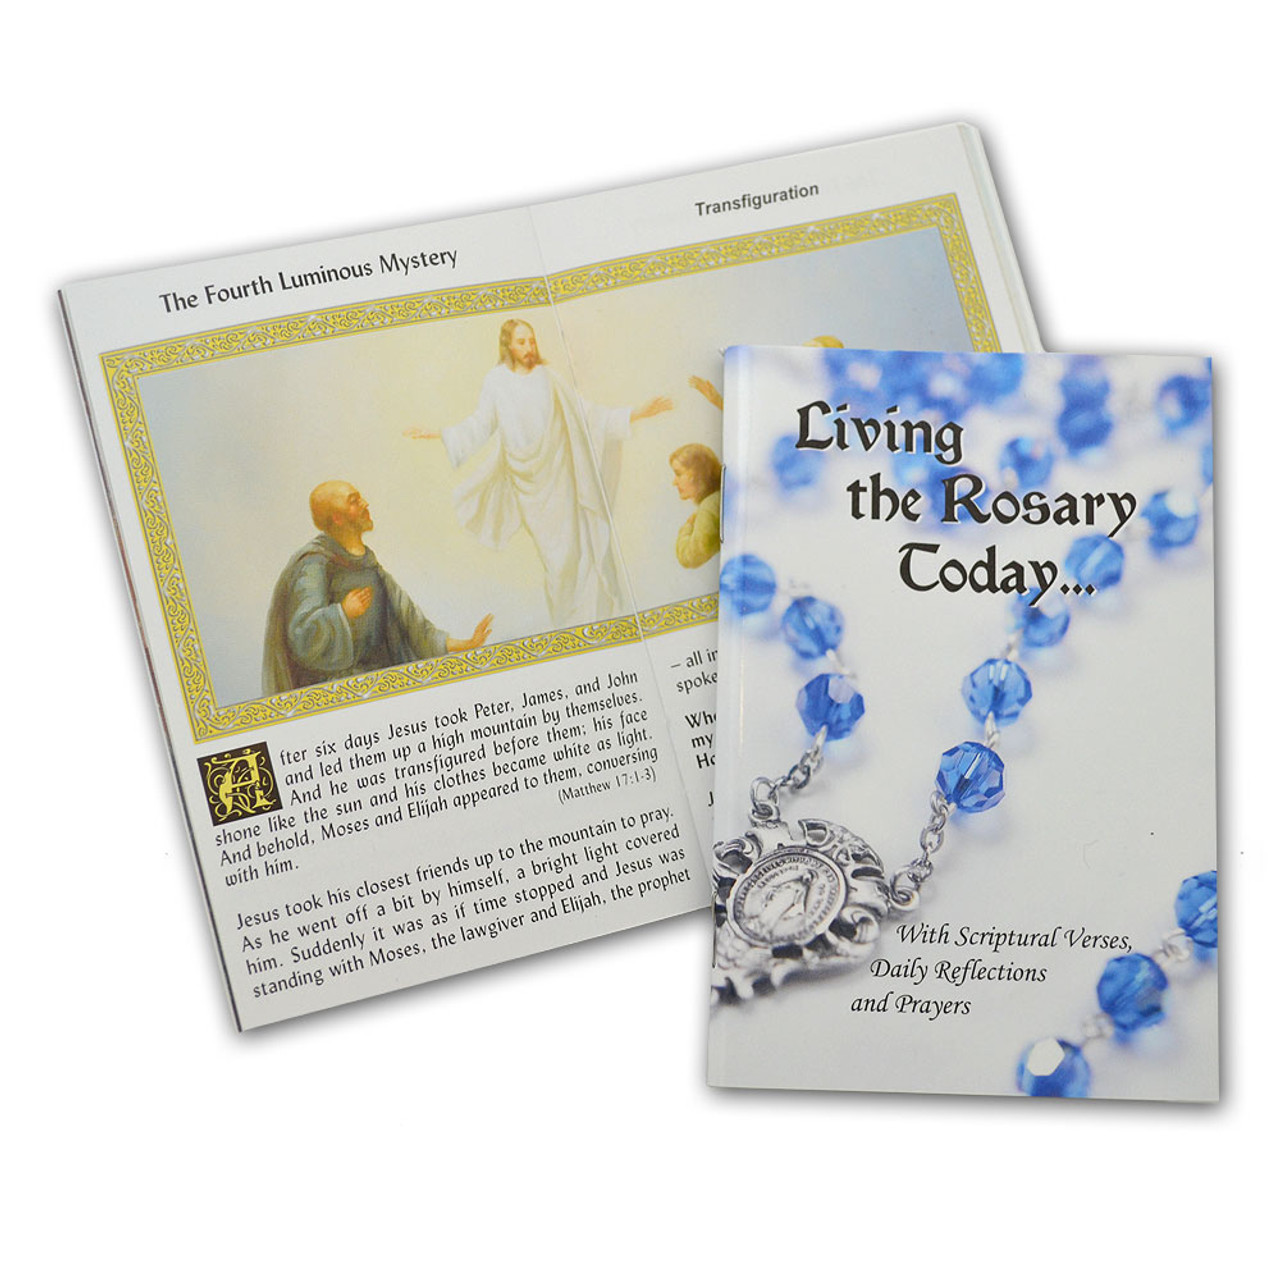 Living the Rosary Today - Mary Beth Osiecki